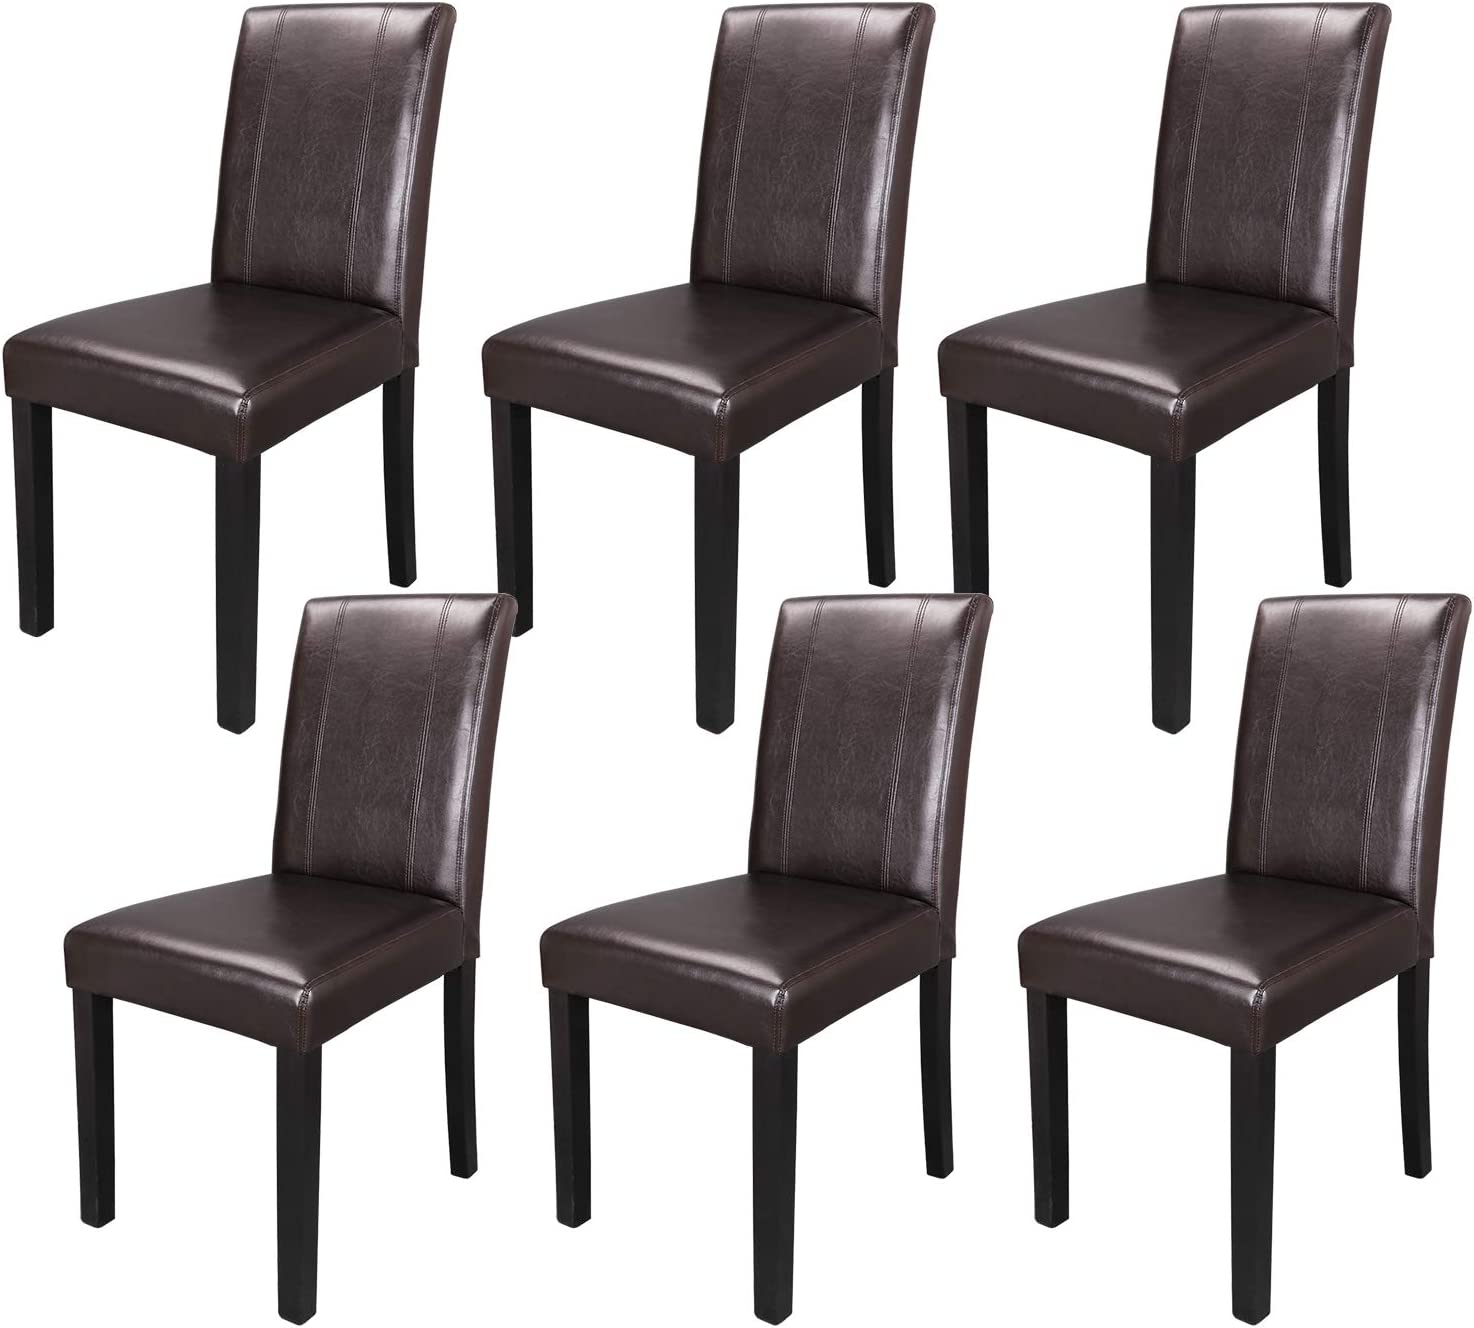 Amazon Com Zeny Set Of 6 Wood Leatherette Padded Parson Chair Dining Chair Brown Furniture Urban Style Chairs